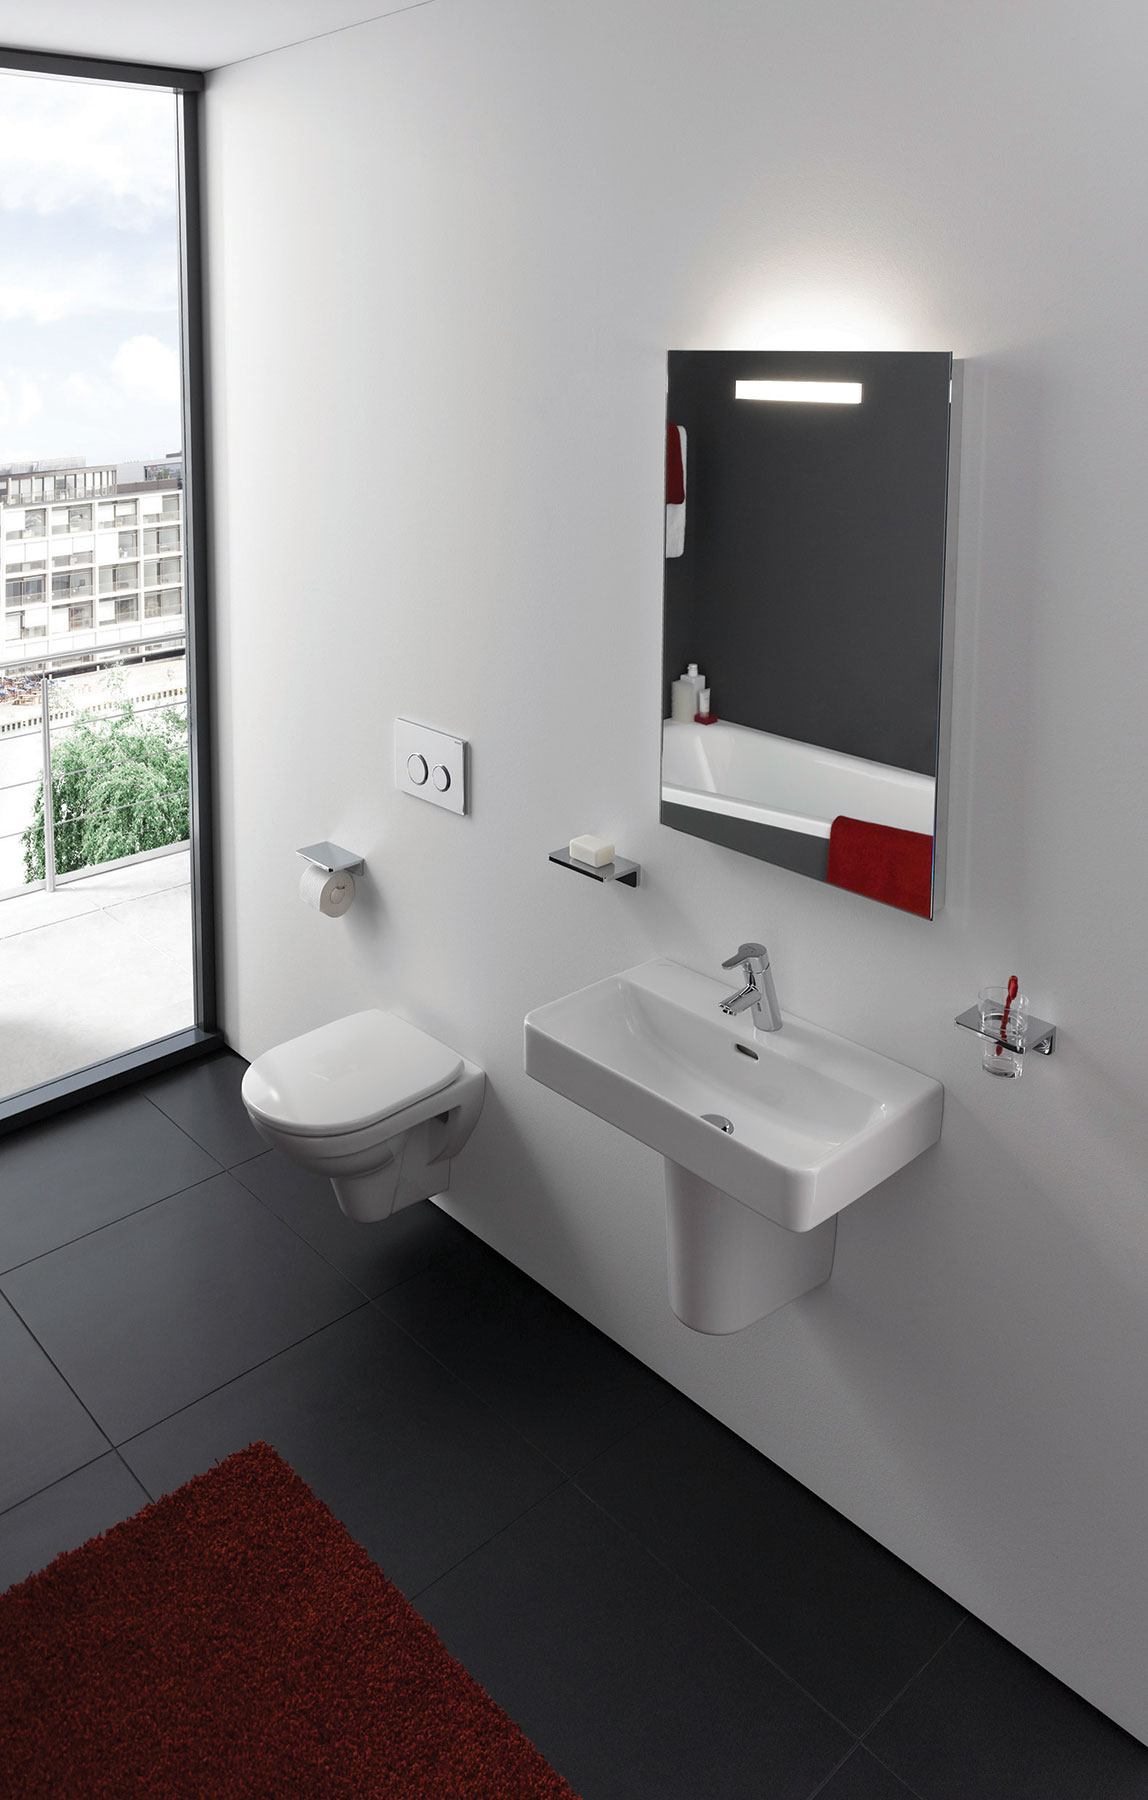 Pro Wall Mount Toilet first image